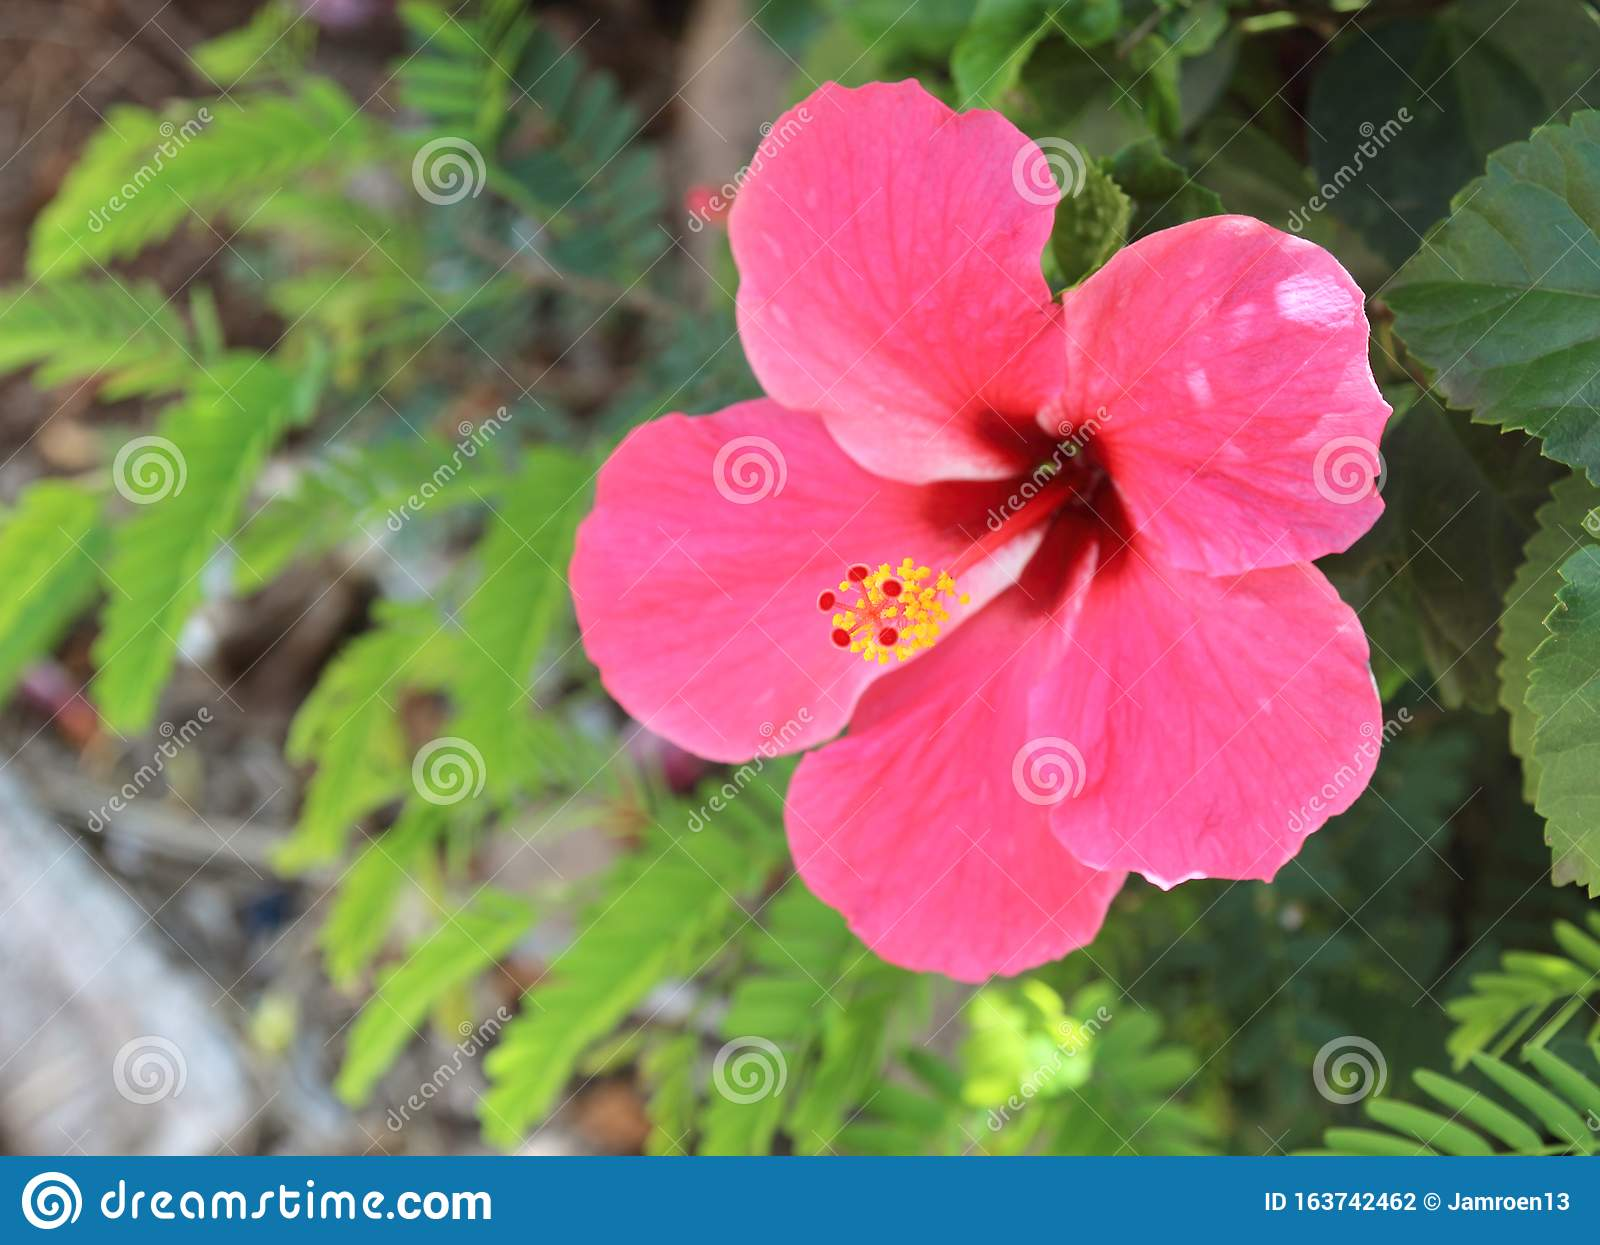 Beautiful Hibiscus Flowers In A Flower Garden Stock Photo Image Of Water Petal 163742462